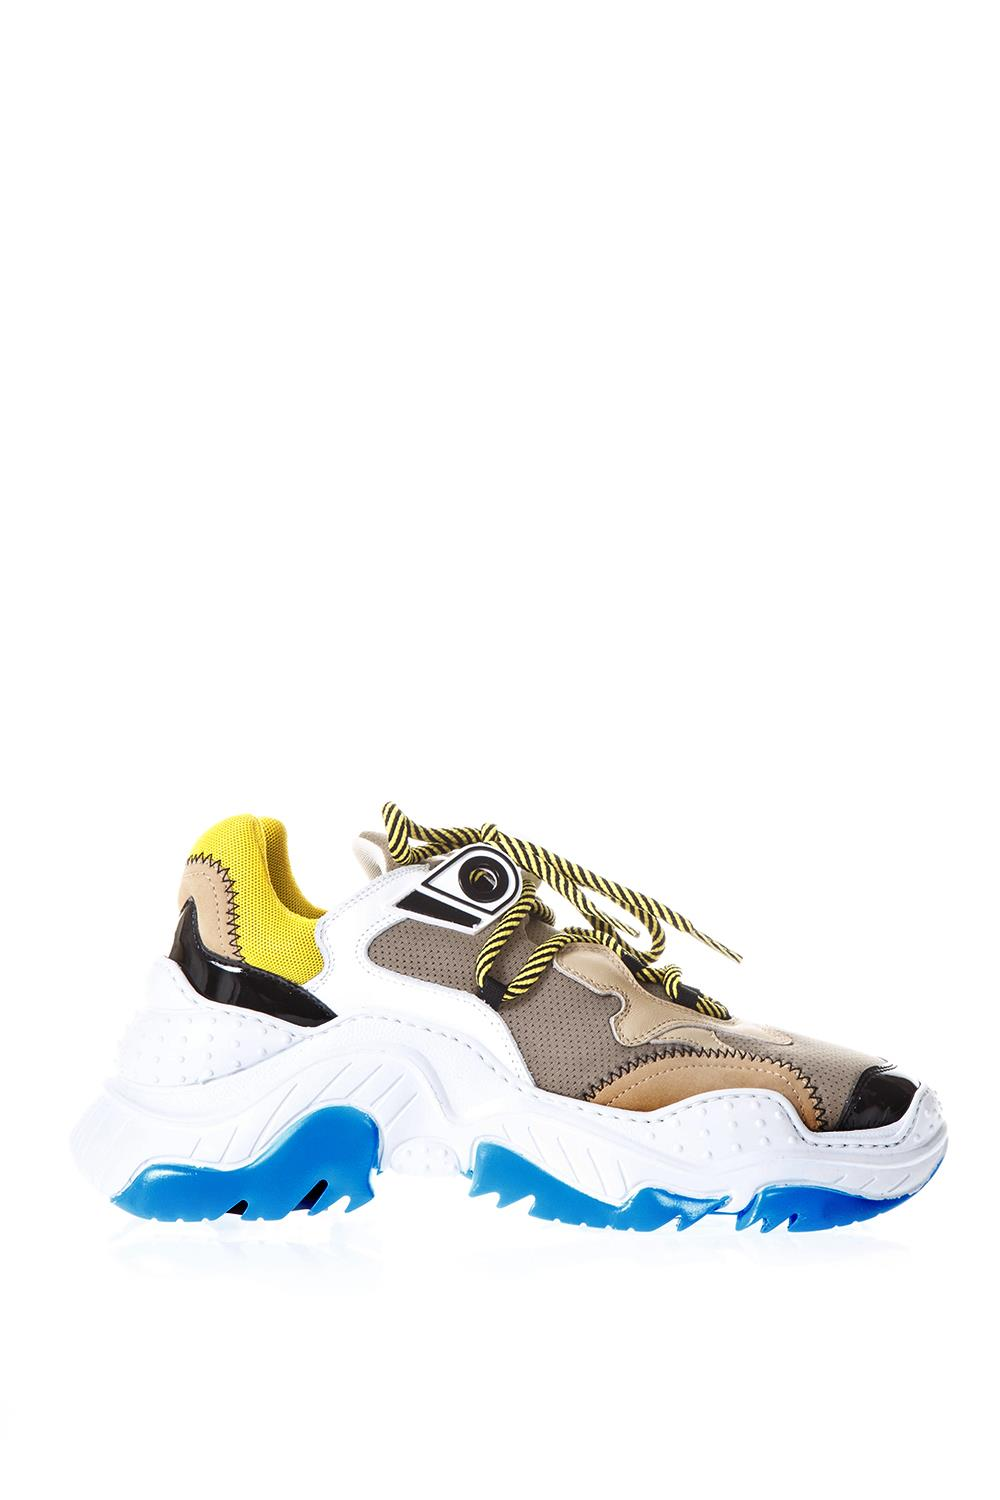 Sole Inserts For Running Shoes